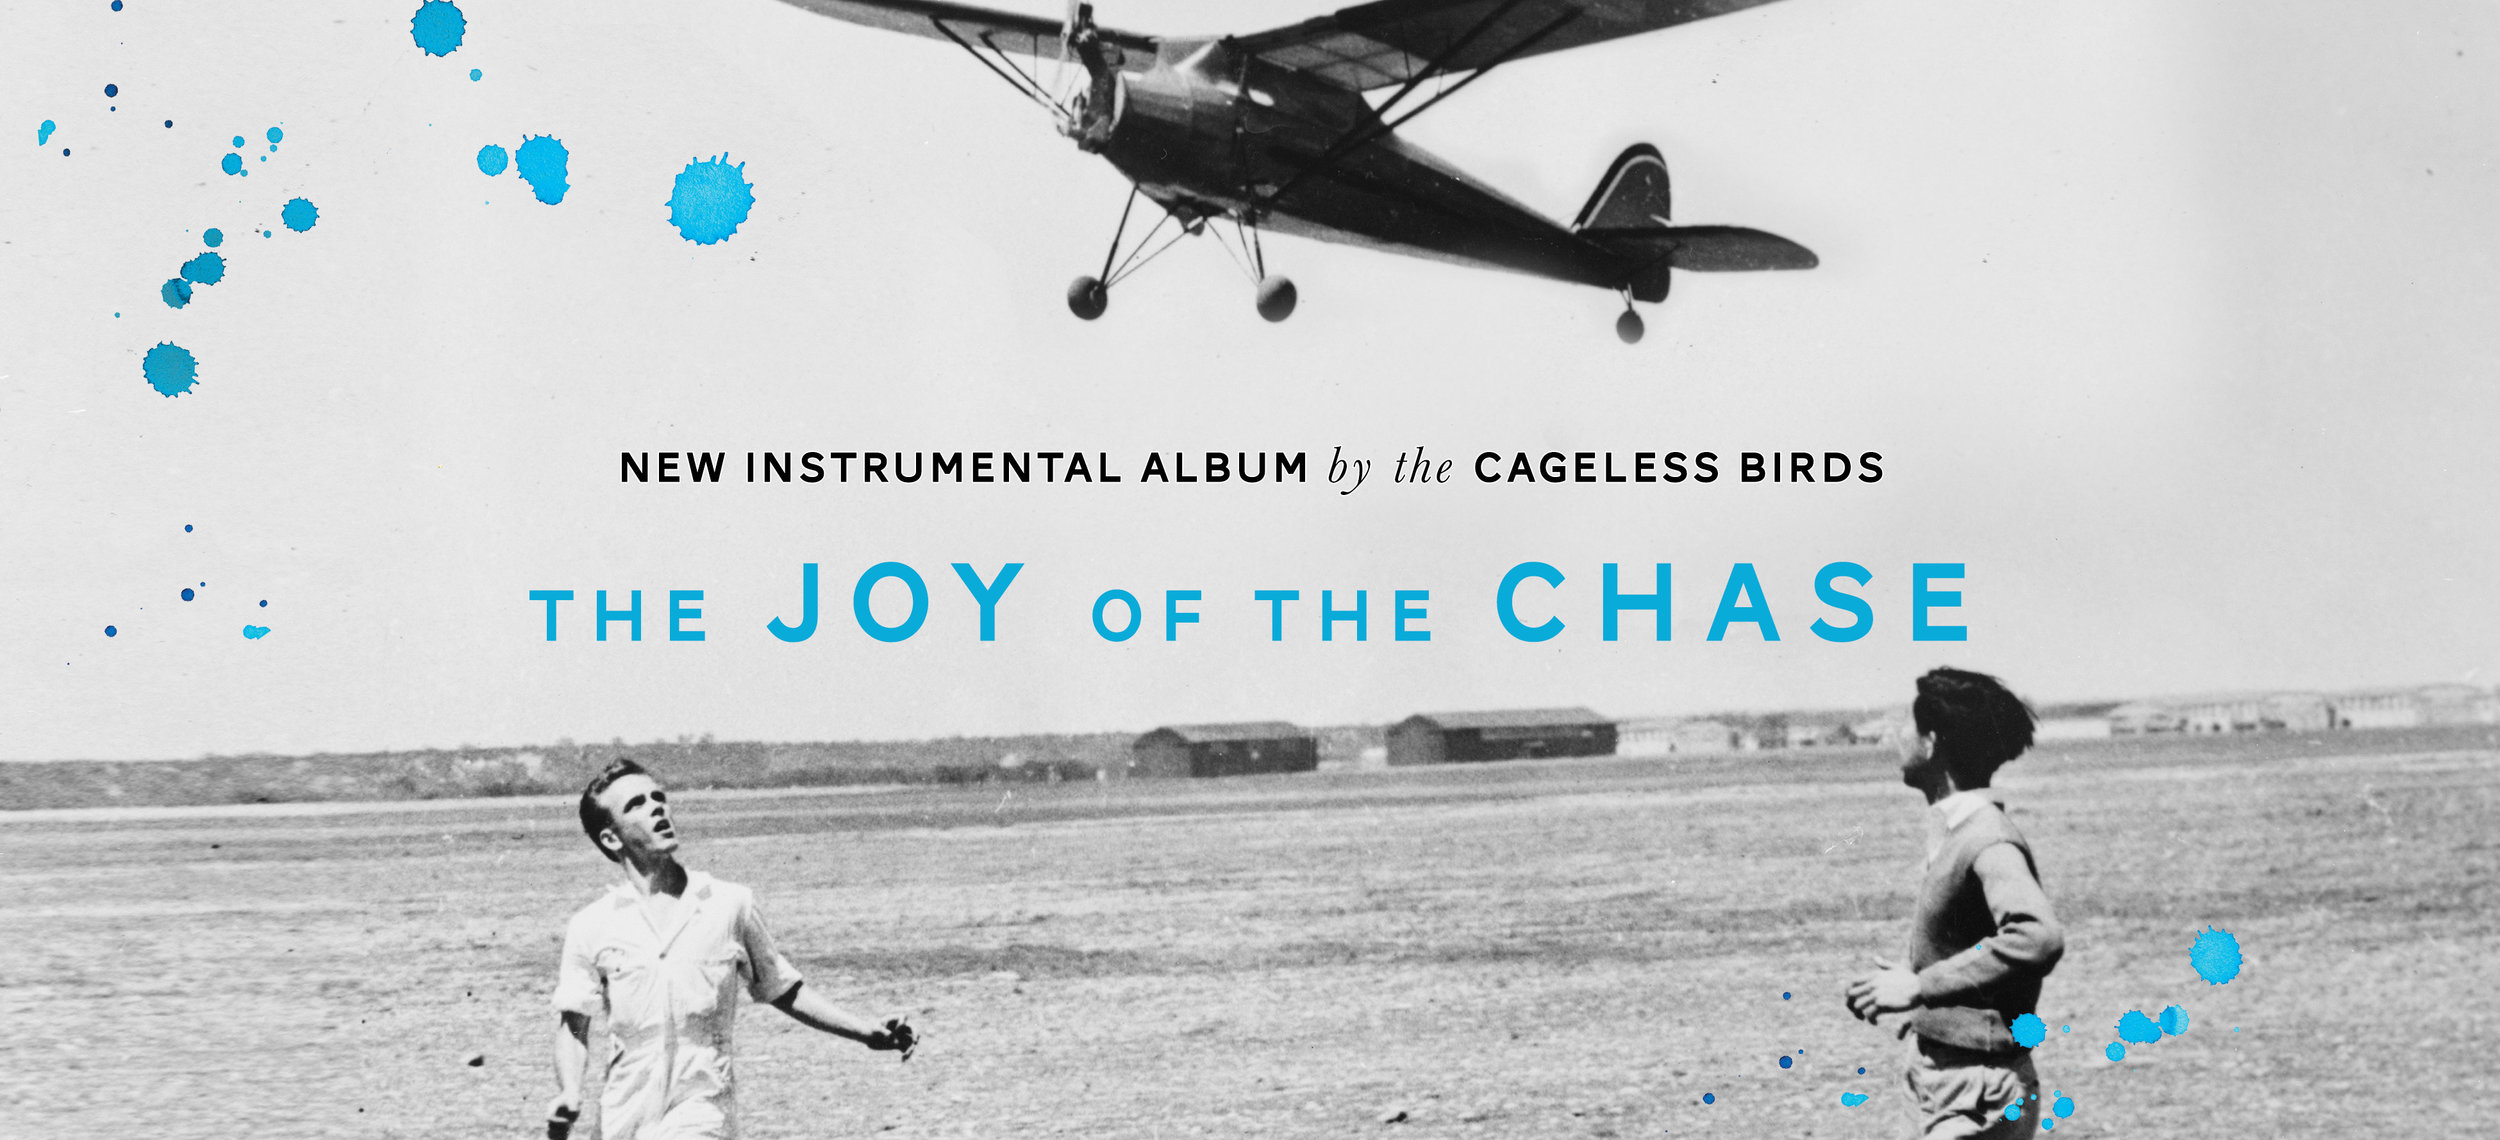 July 21, 2017 Joy of the Chase - Our First Instrumental Album